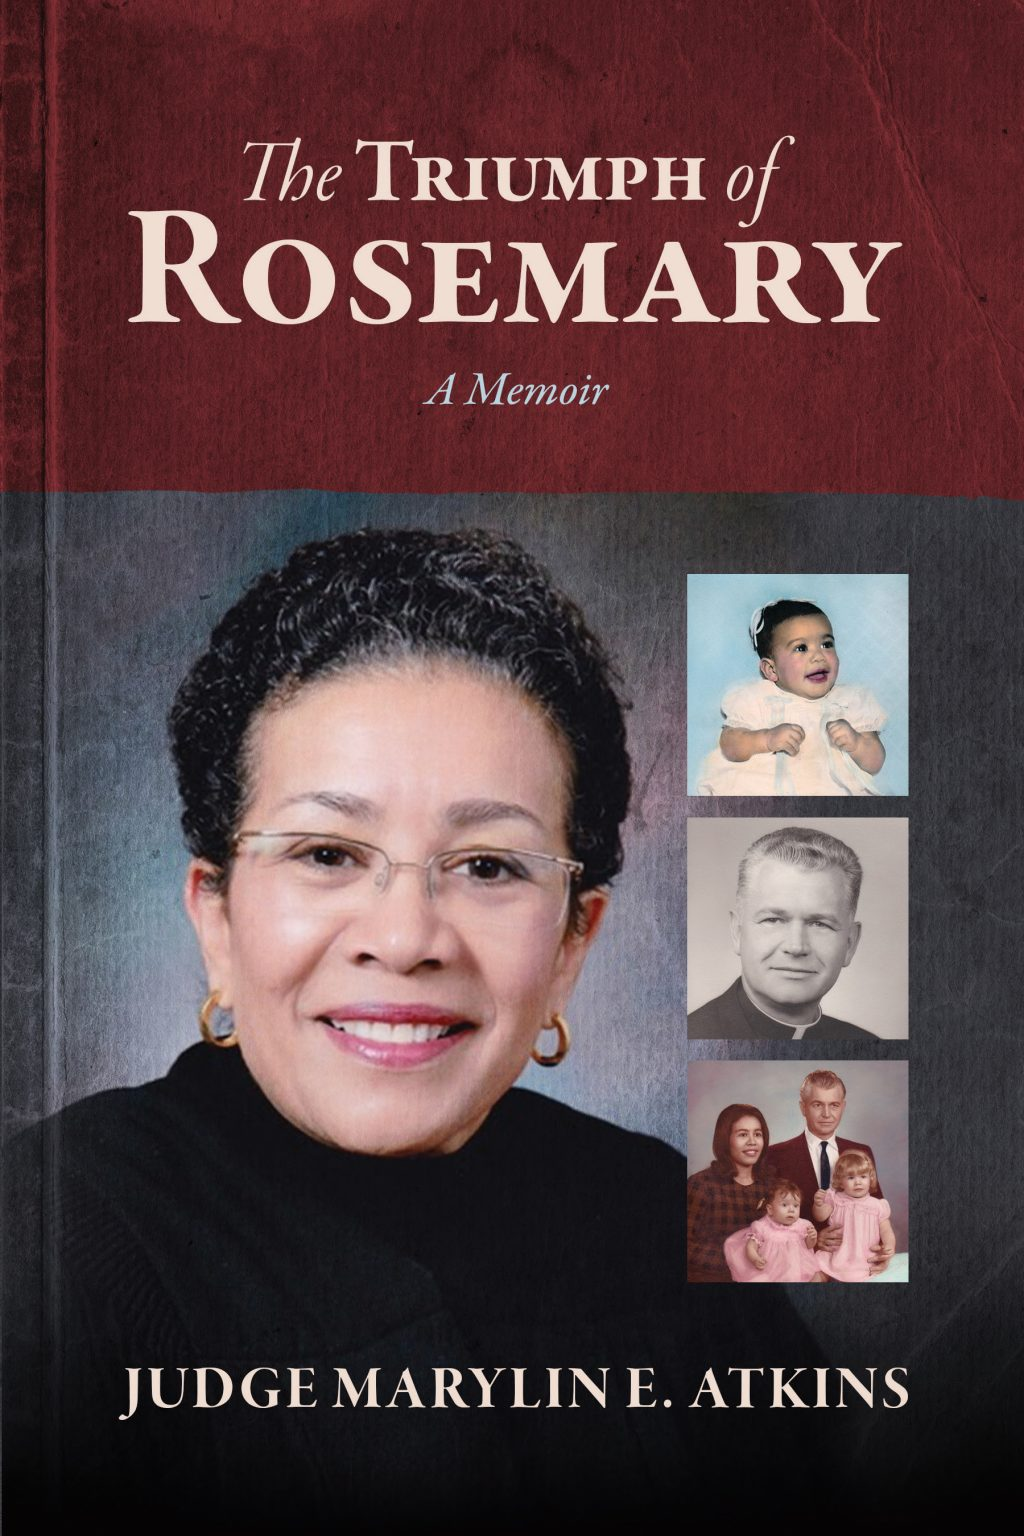 The Triumph of Rosemary by Marylin E. Atkins